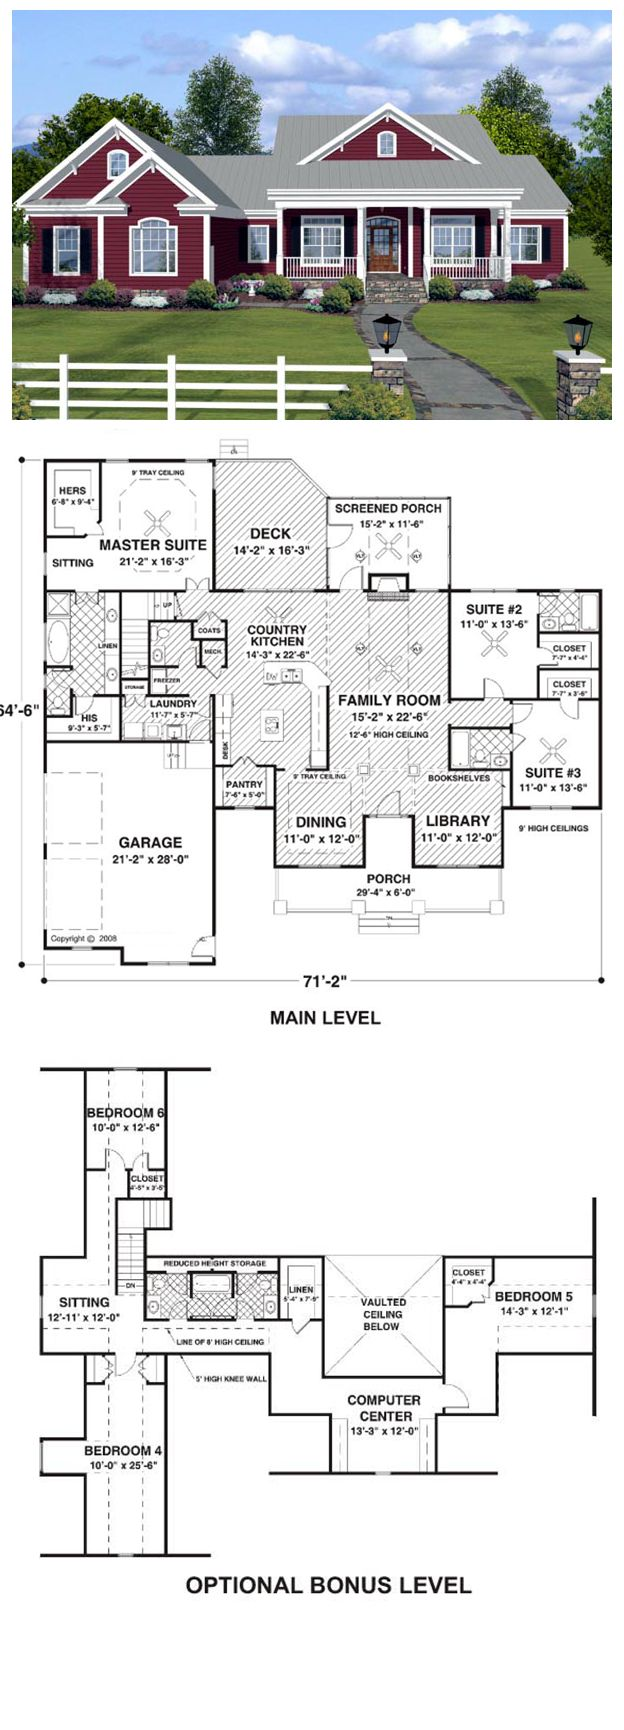 5 bedroom 3 bathroom house plans - Country Farmhouse Ranch House Plan 74834